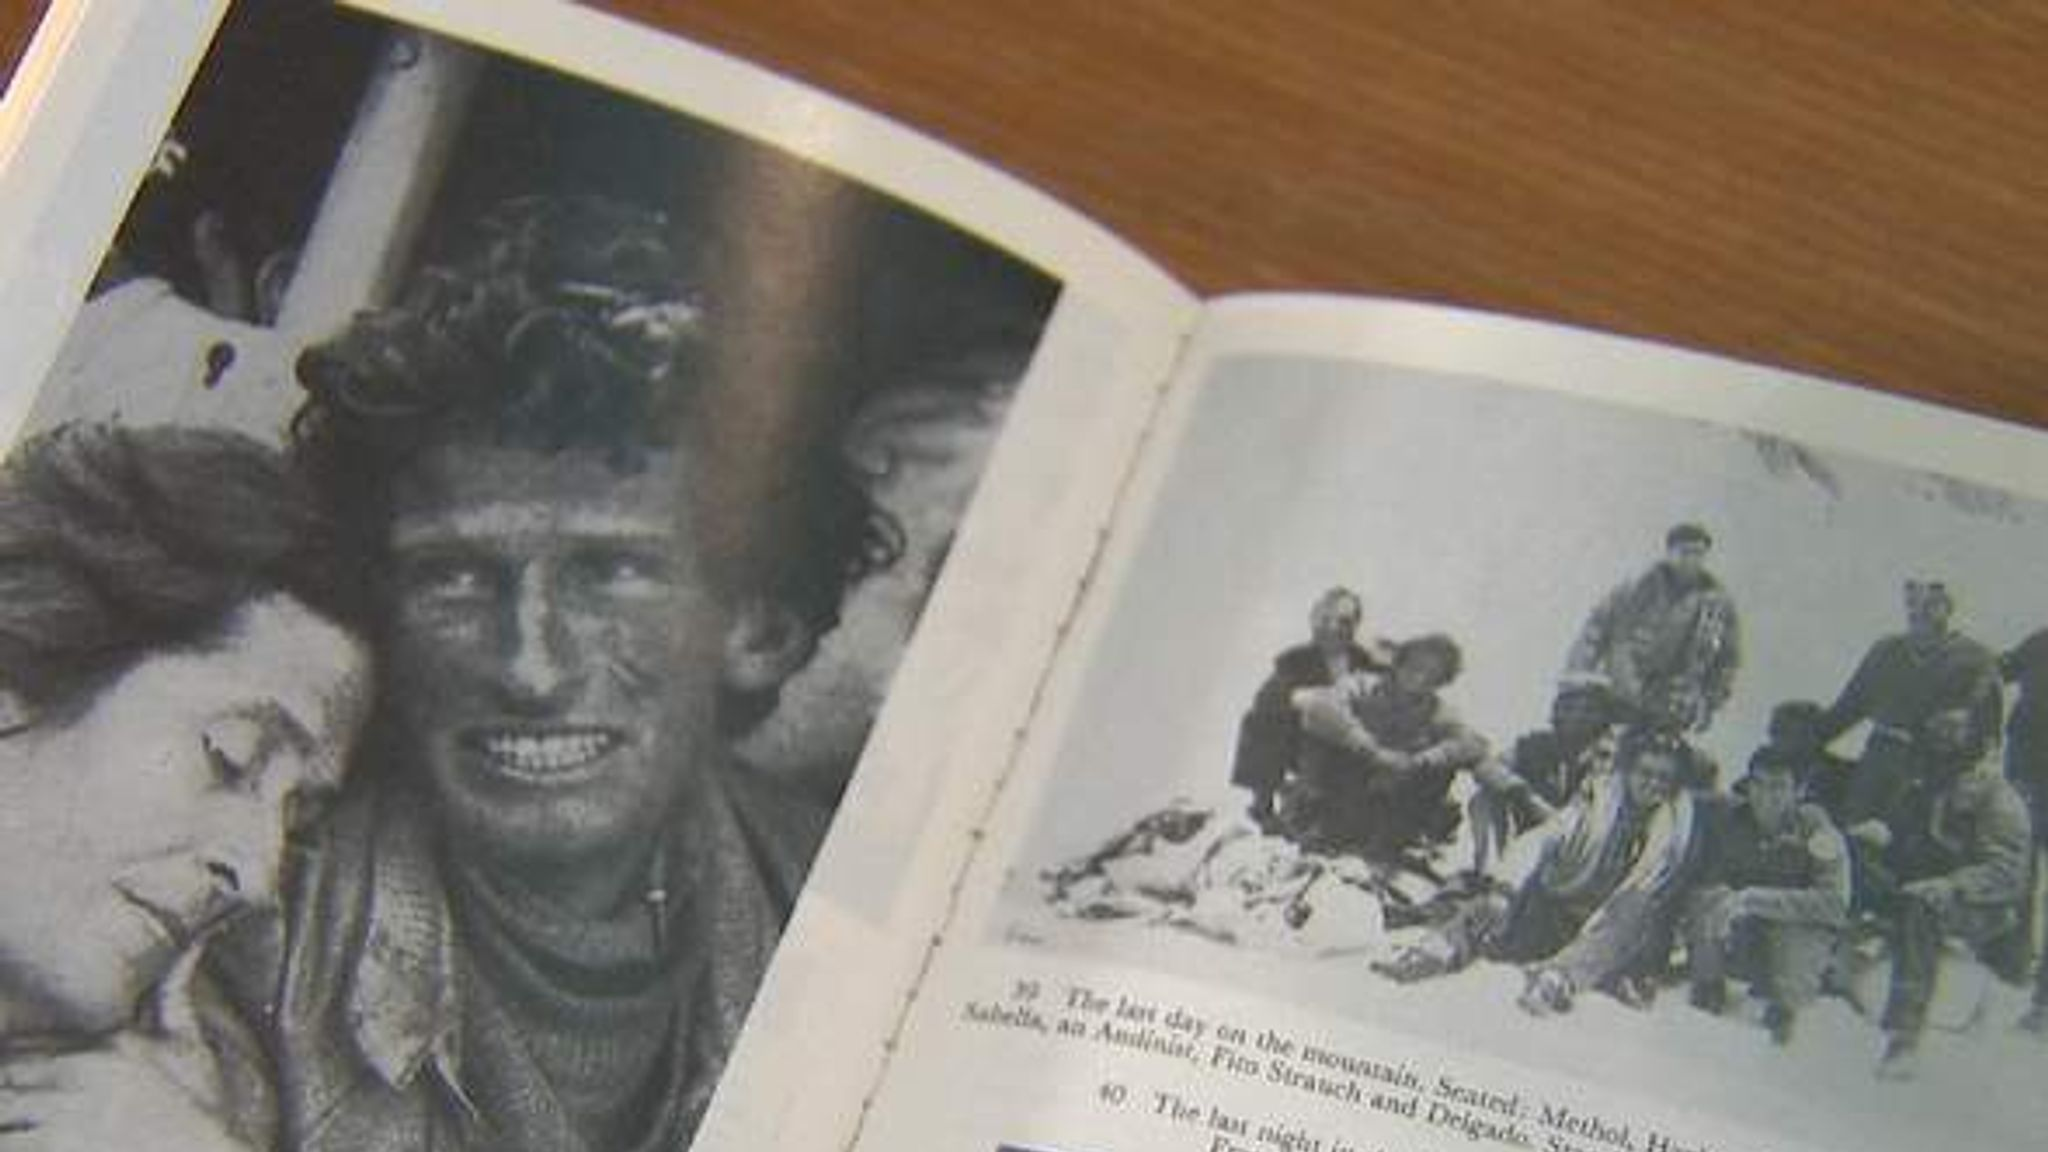 The Amazing Survival Story Of A Uruguayan Rugby Team In 1972 Rugby Union News Sky Sports